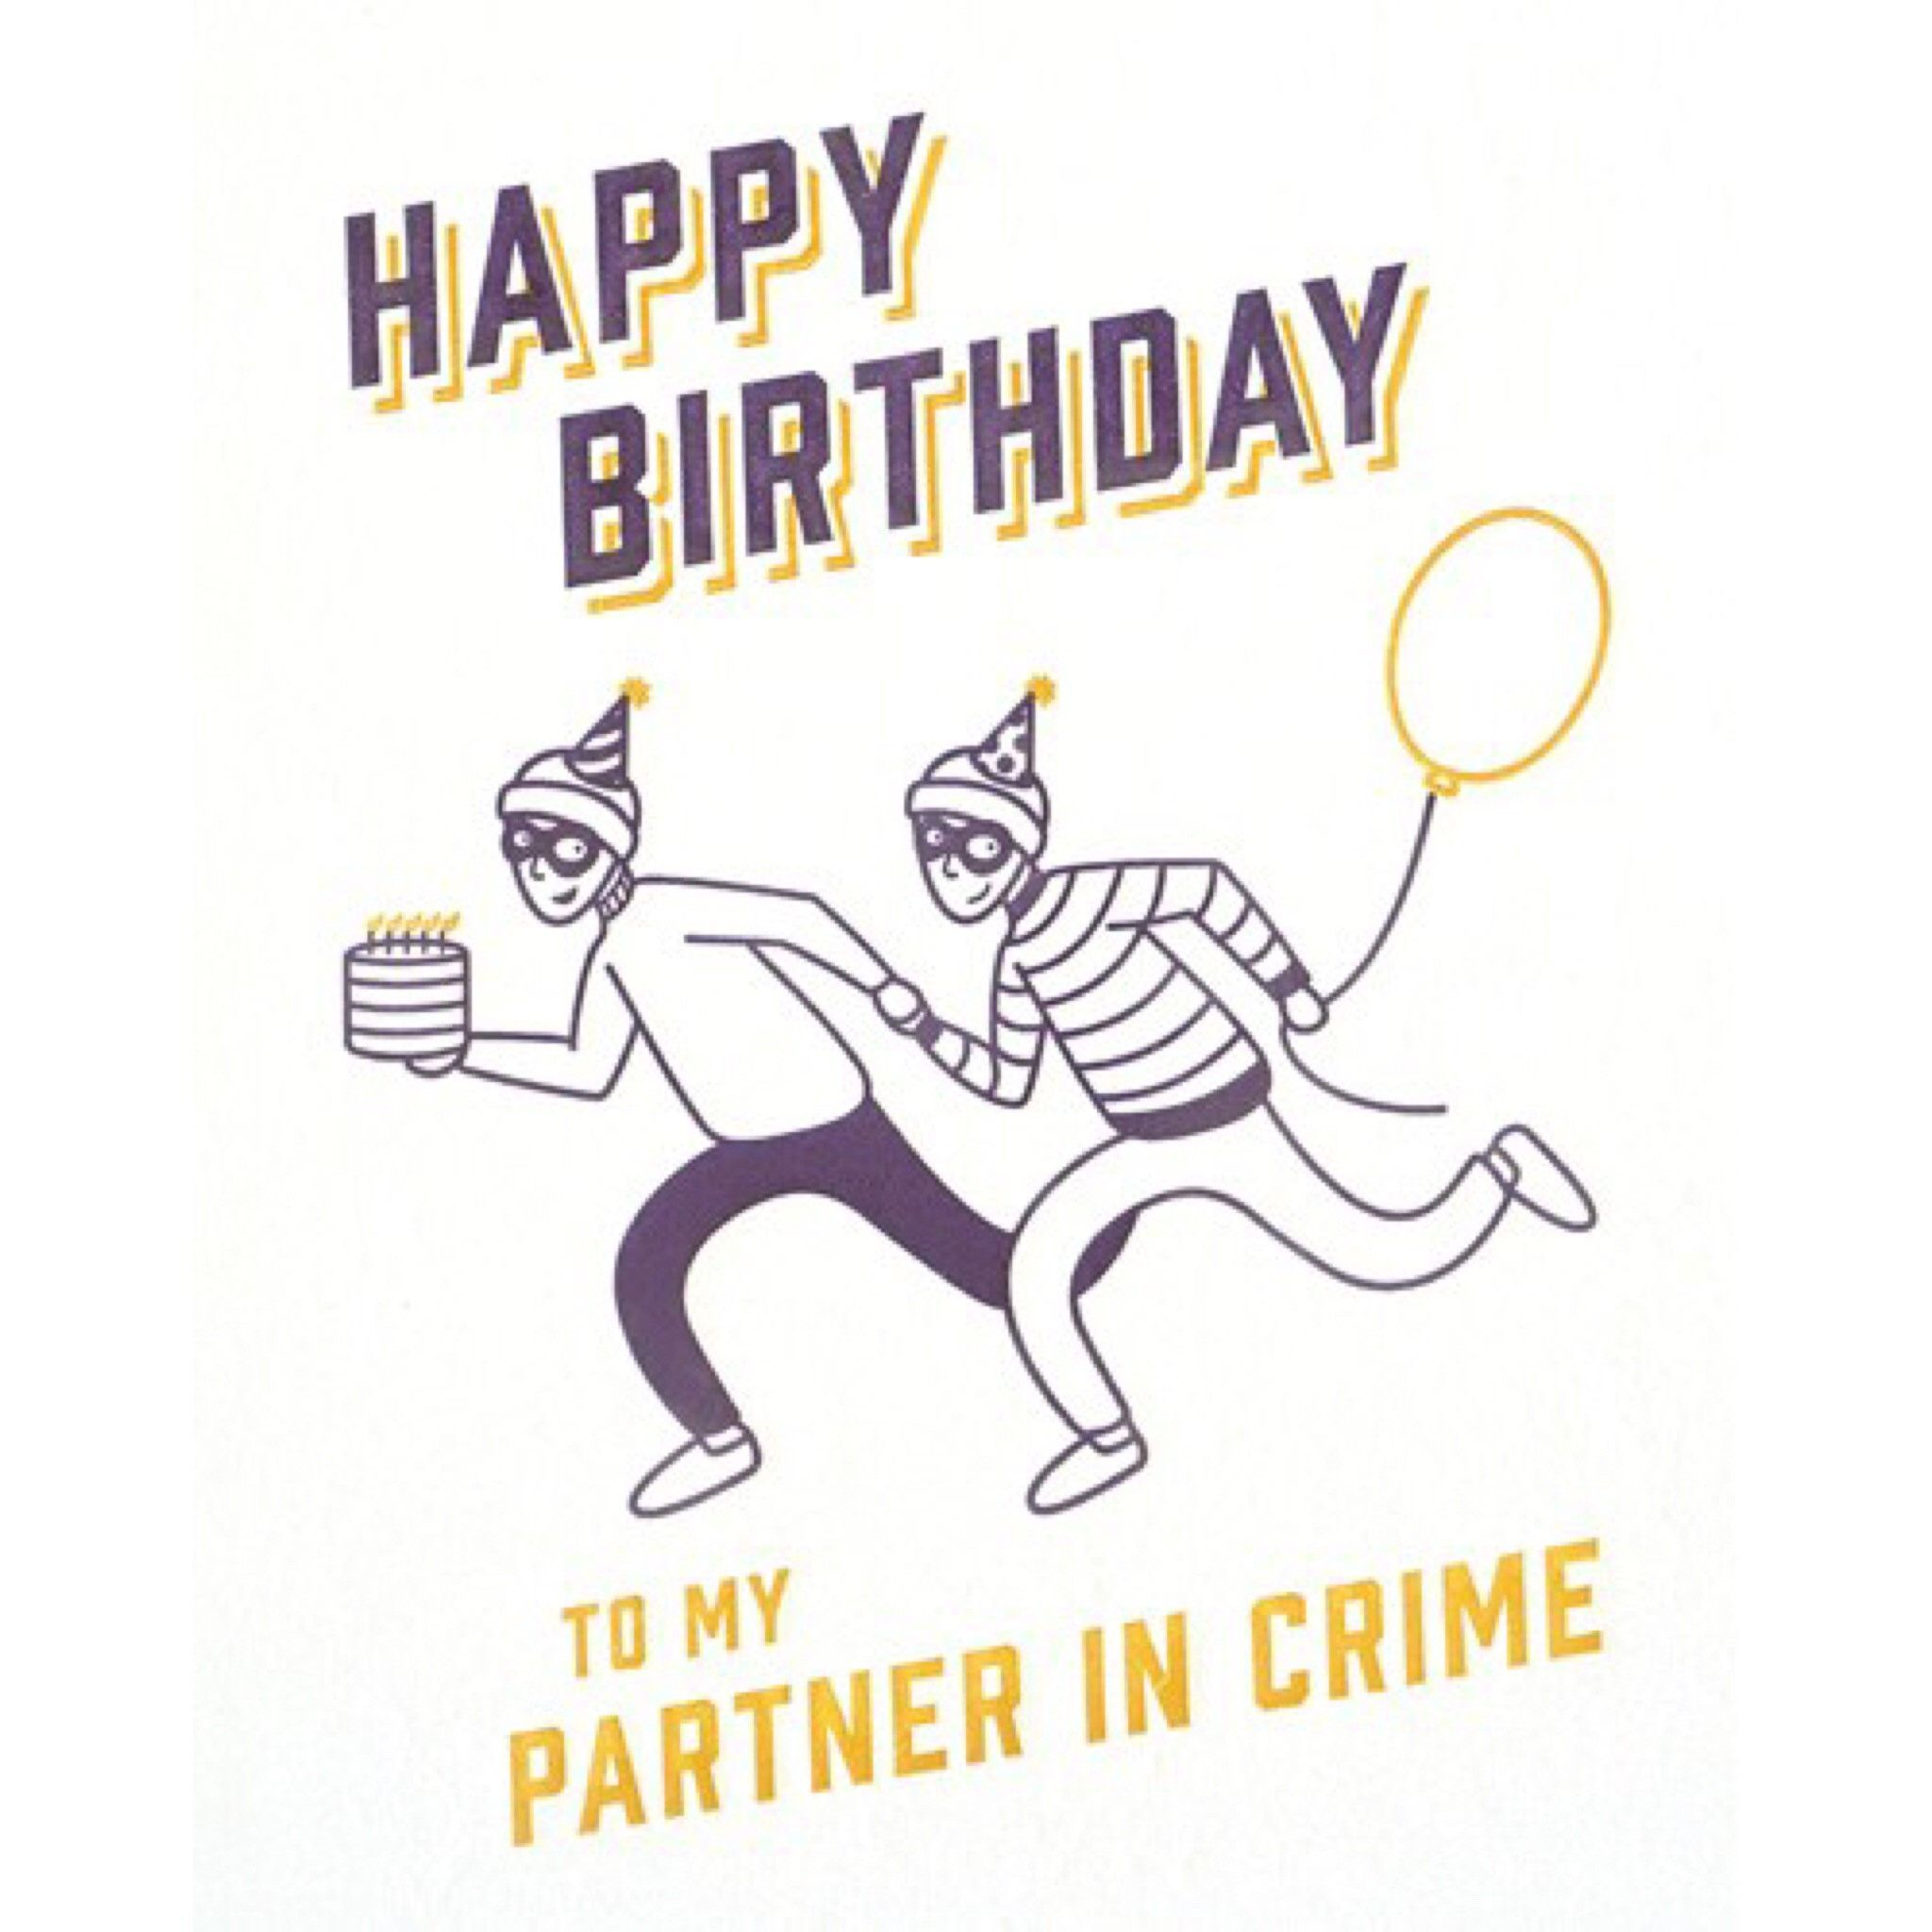 Partner In Crime Birthday Card Happy Birthday For Her